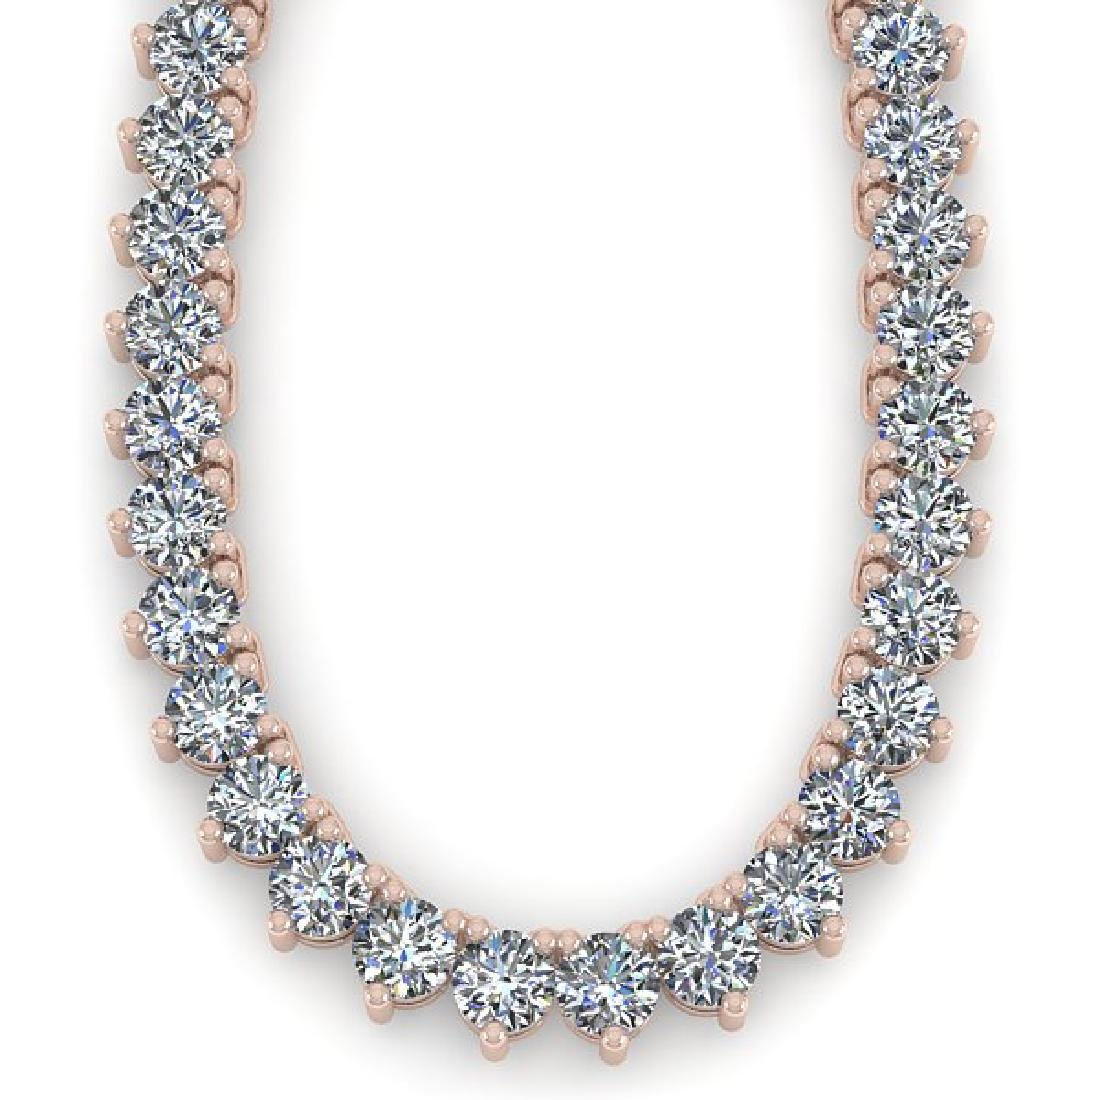 50 CTW Solitaire SI Diamond Necklace 18K Rose Gold - 2